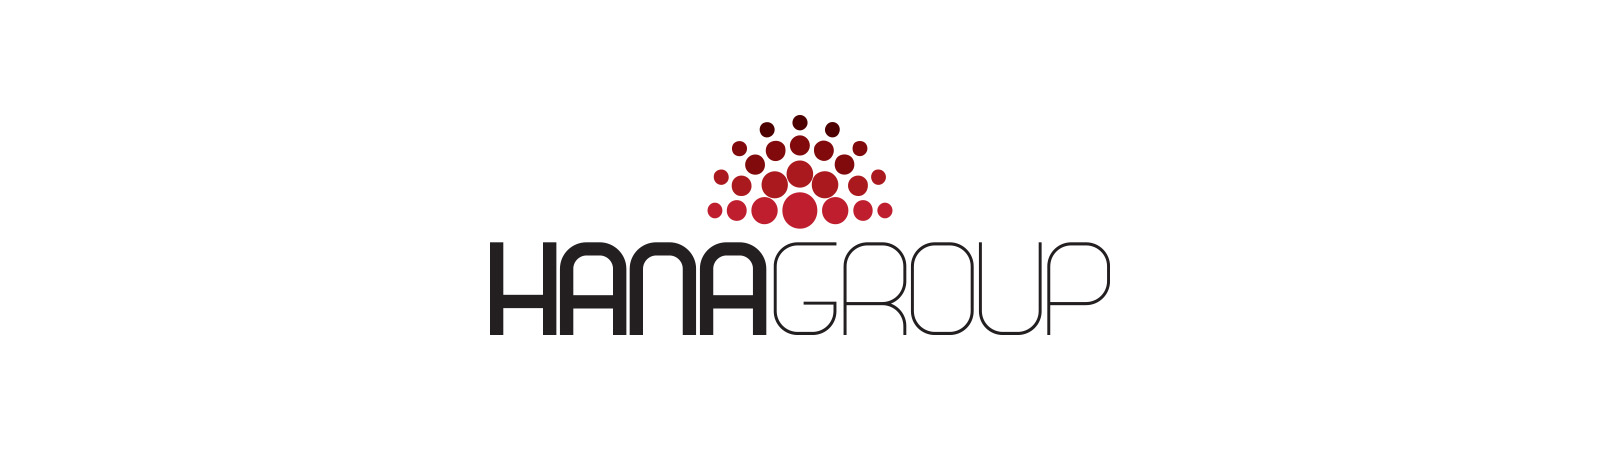 Hana Group logo image